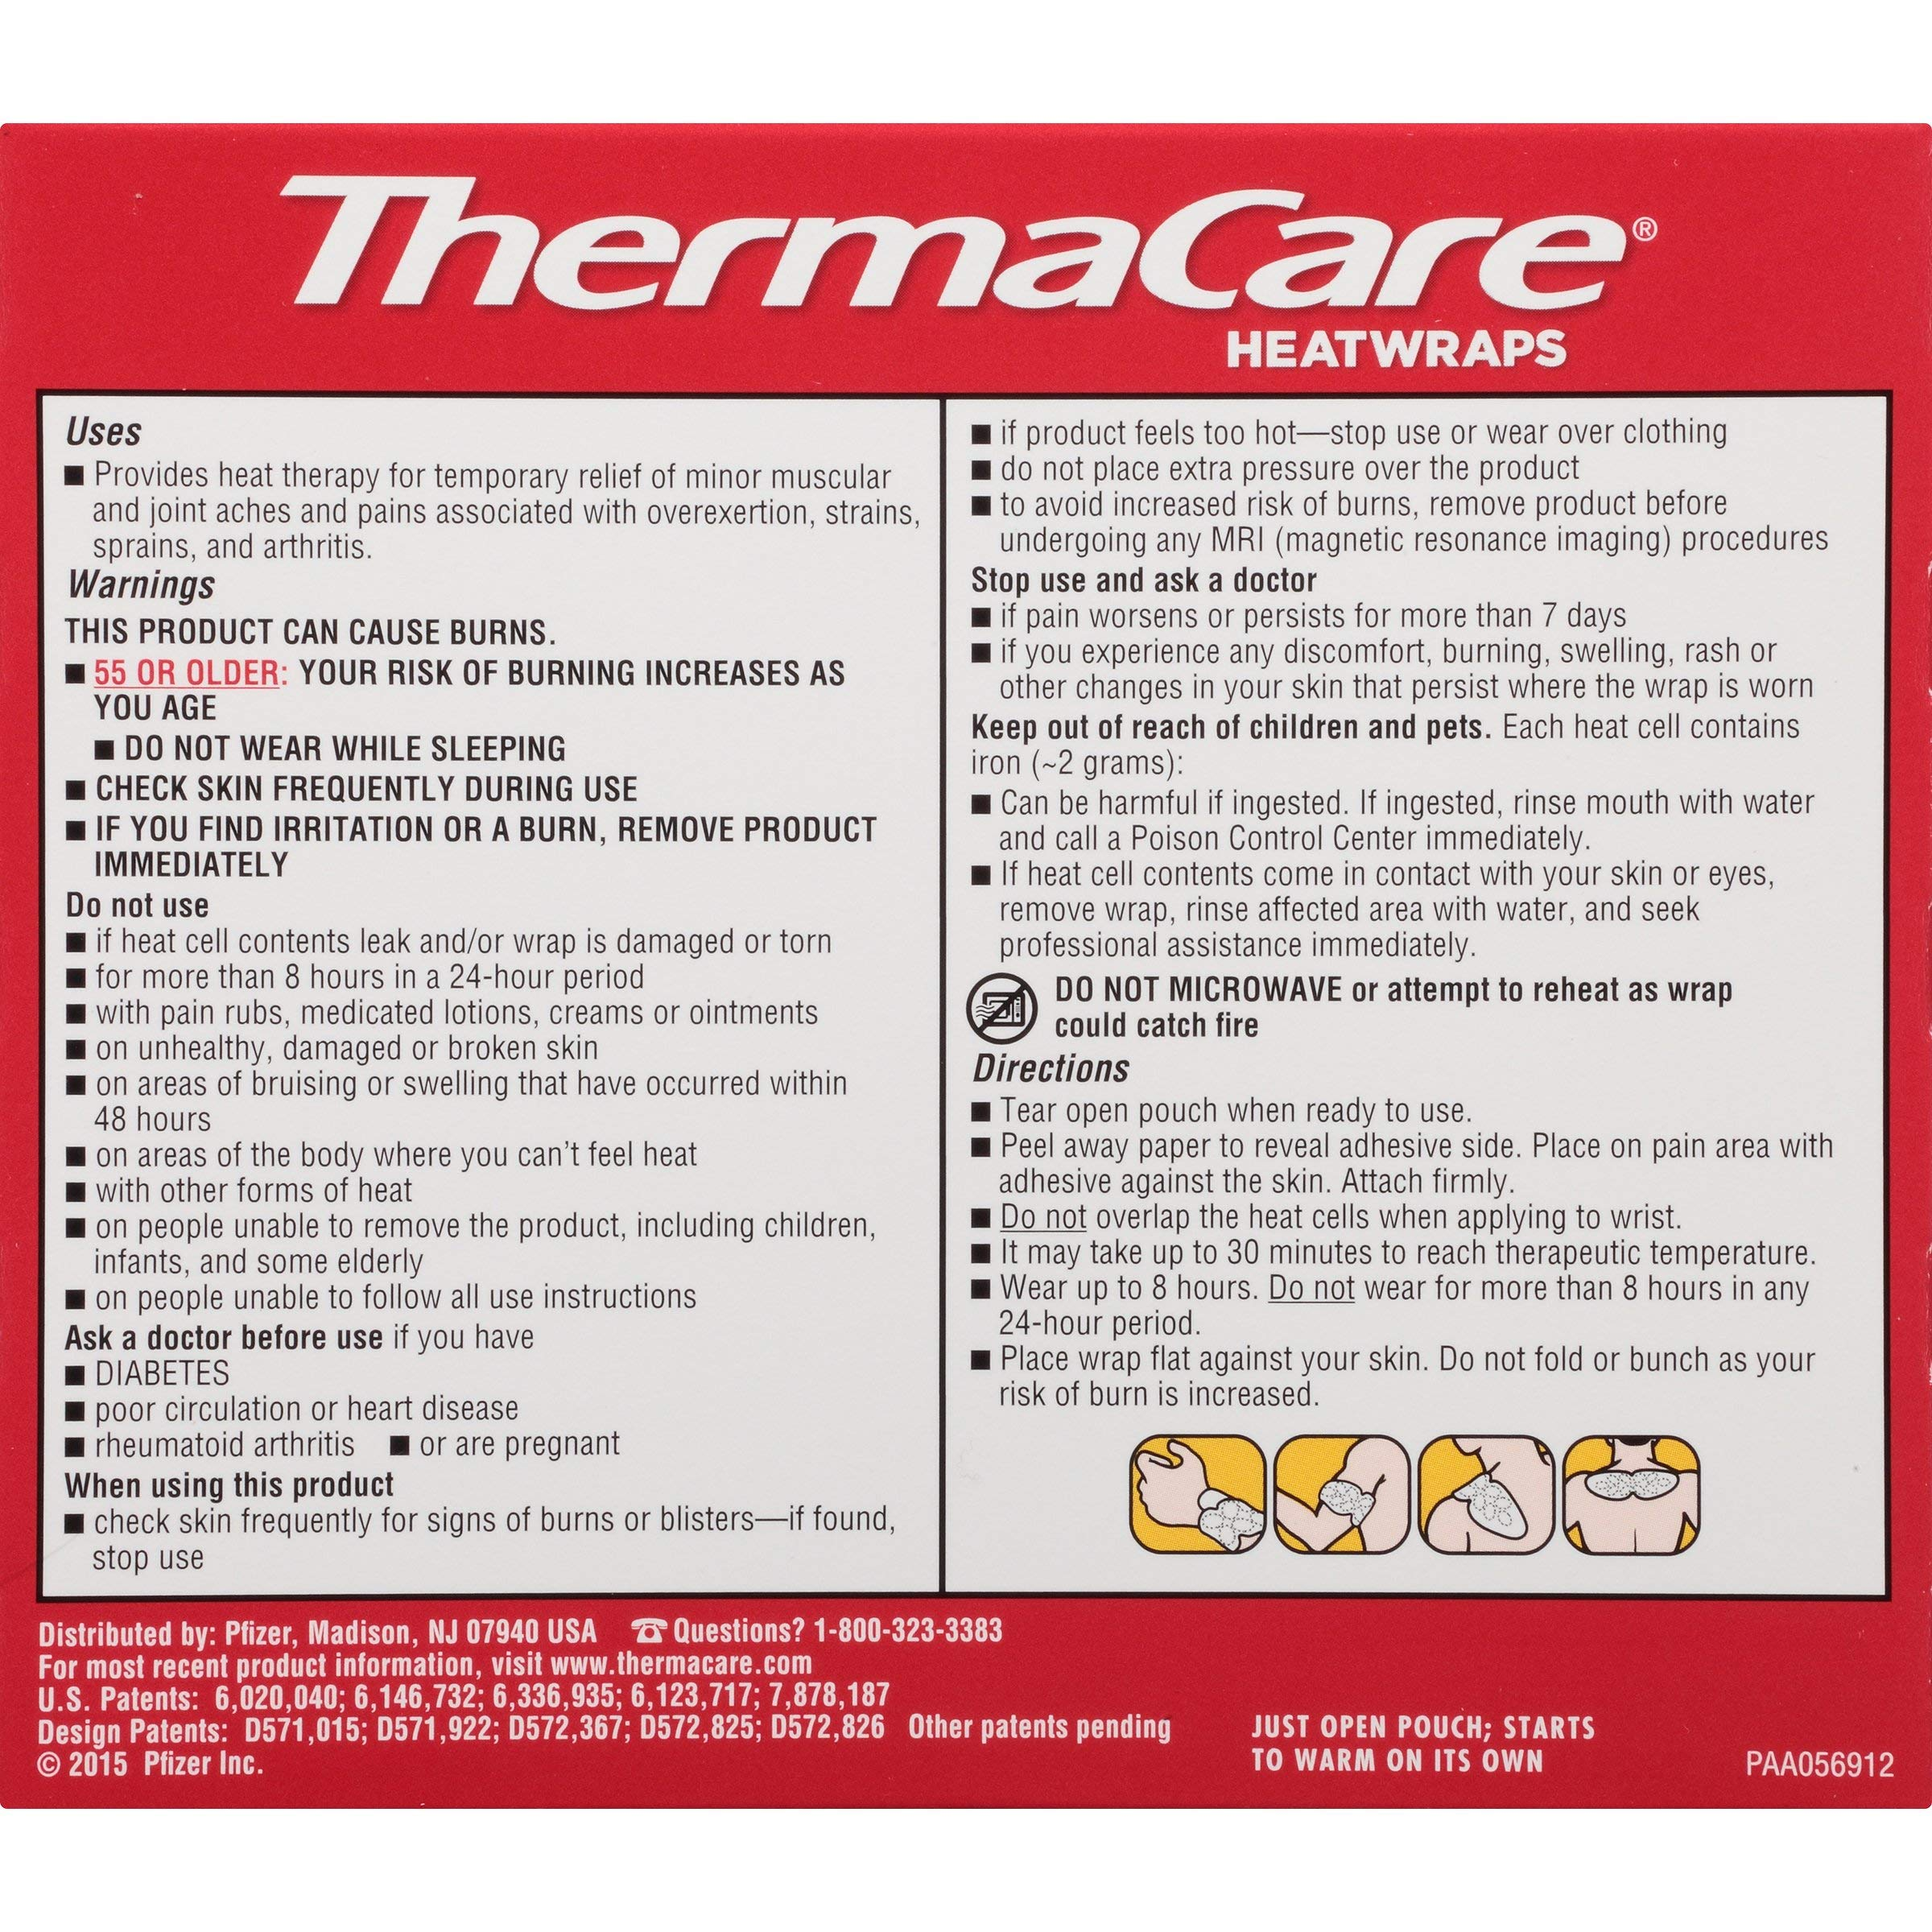 ThermaCare Air-Activated Heatwraps, Neck, Wrist & Shoulder, 3 HeatWraps (Pack of 5) by ThermaCare